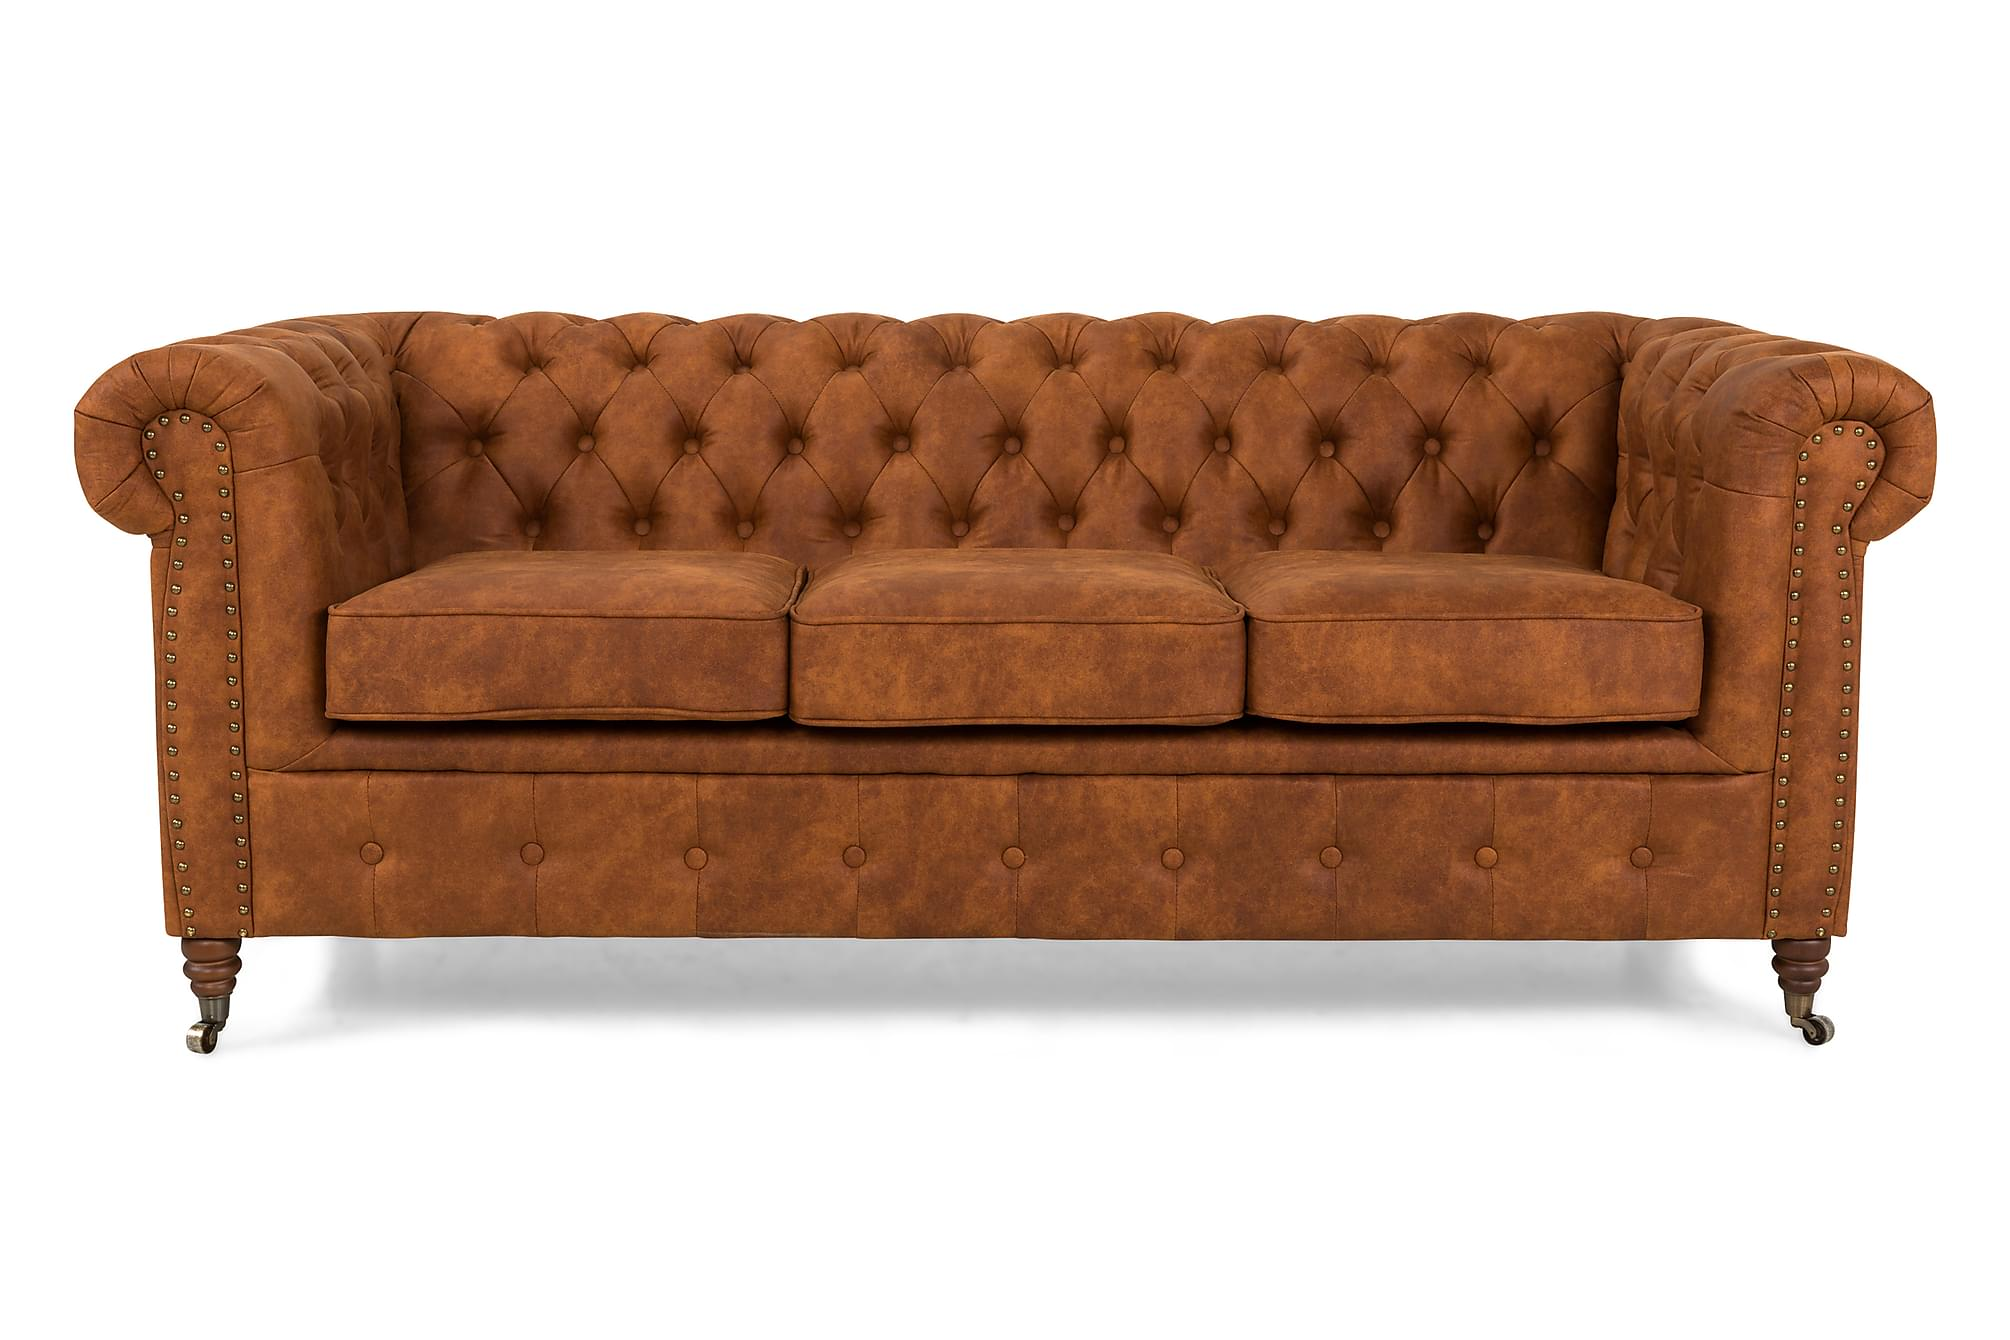 CHESTERFIELD LUX 3-sits Soffa Cognac, Chesterfieldsoffor